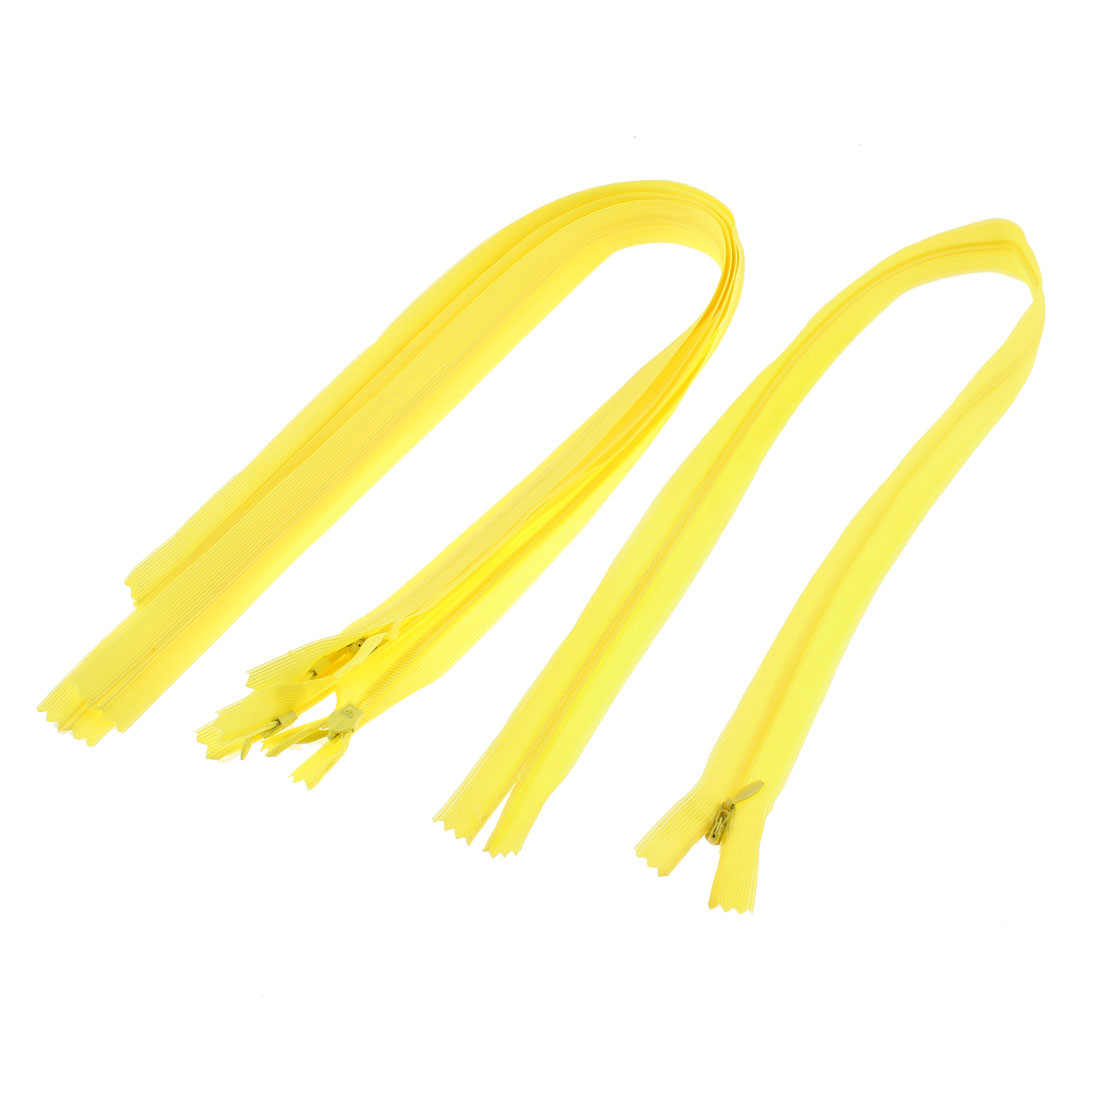 Dress Pants Closed End Nylon Zippers Tailor Sewing Craft Tool Yellow 55cm 5 Pcs